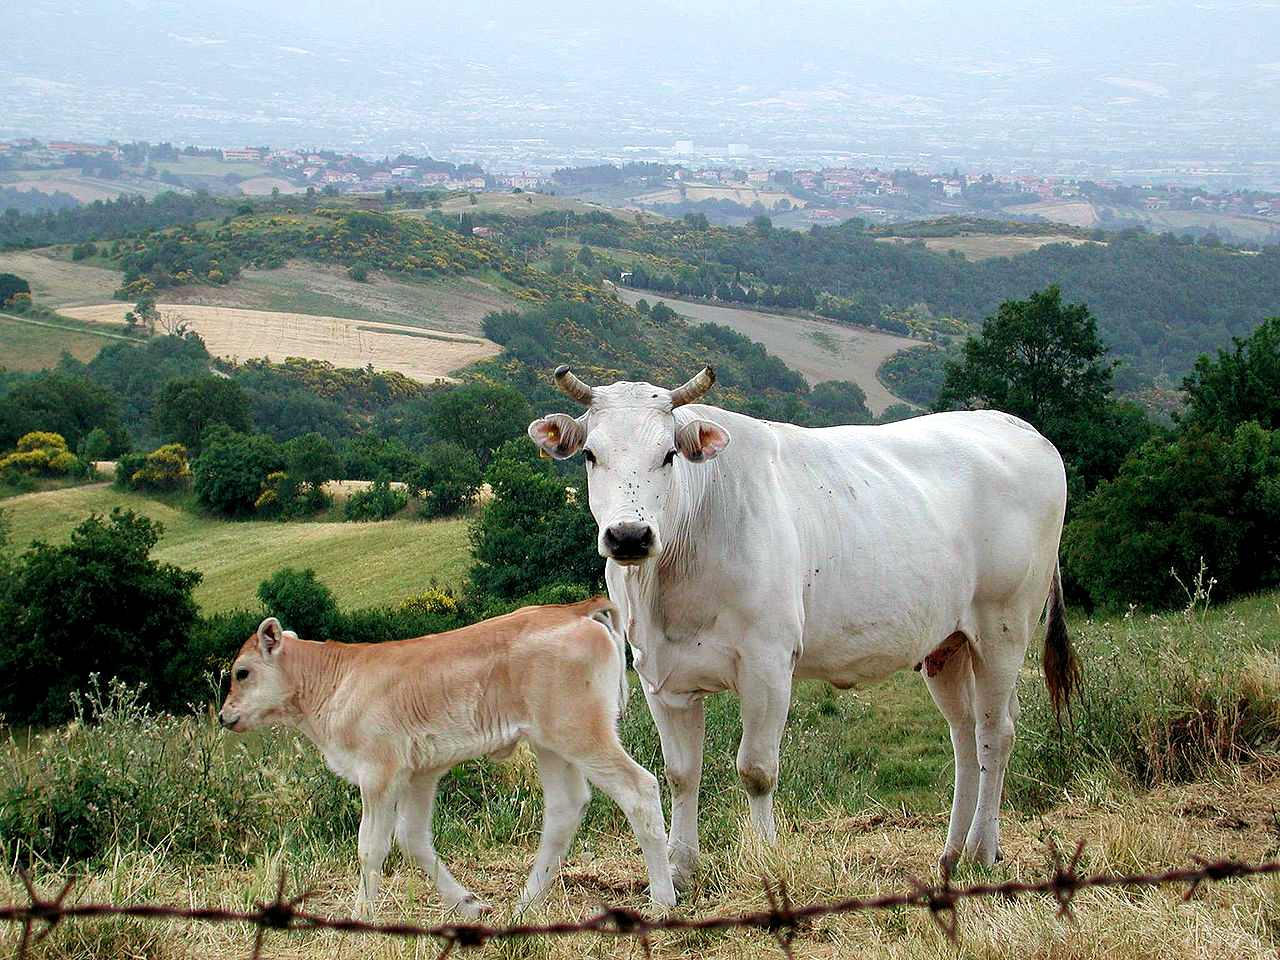 DNA analysis of medieval cattle from central Italy suggests an old origin of Chianina and Romagnola cattle